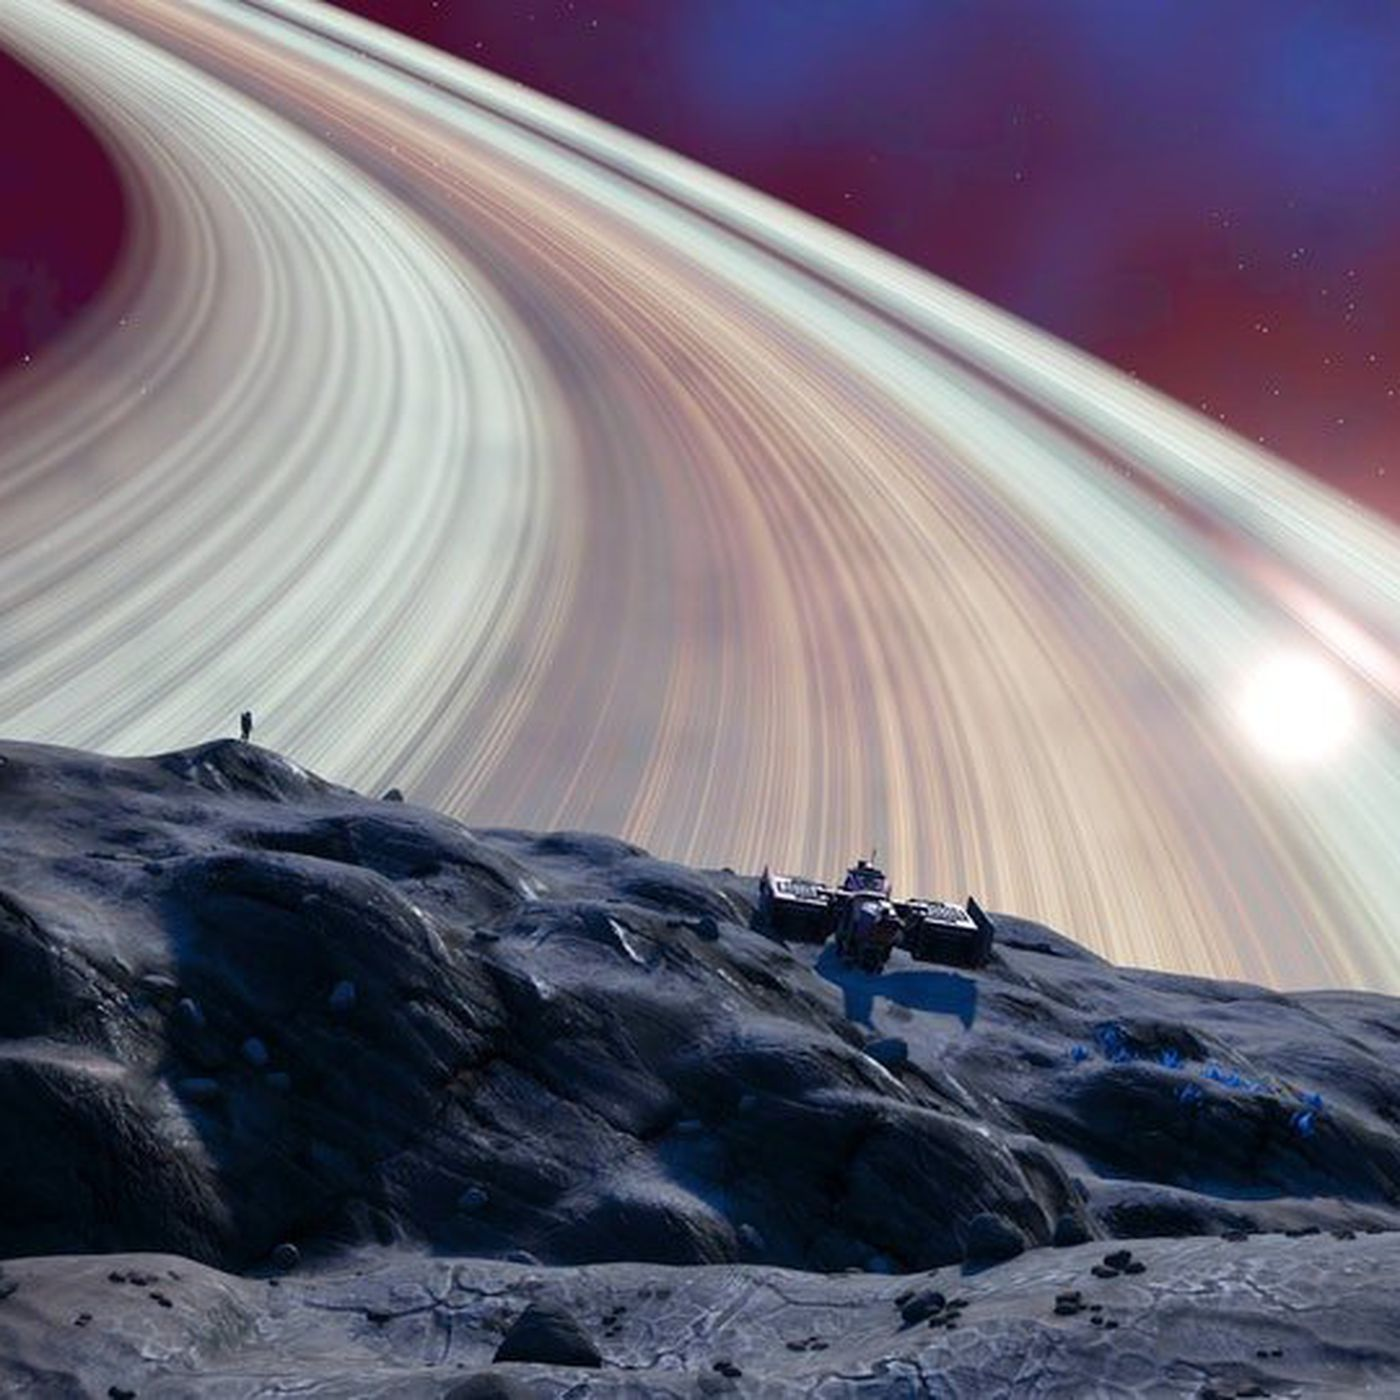 Flying in No Man's Sky is beautiful now, but not that easy with